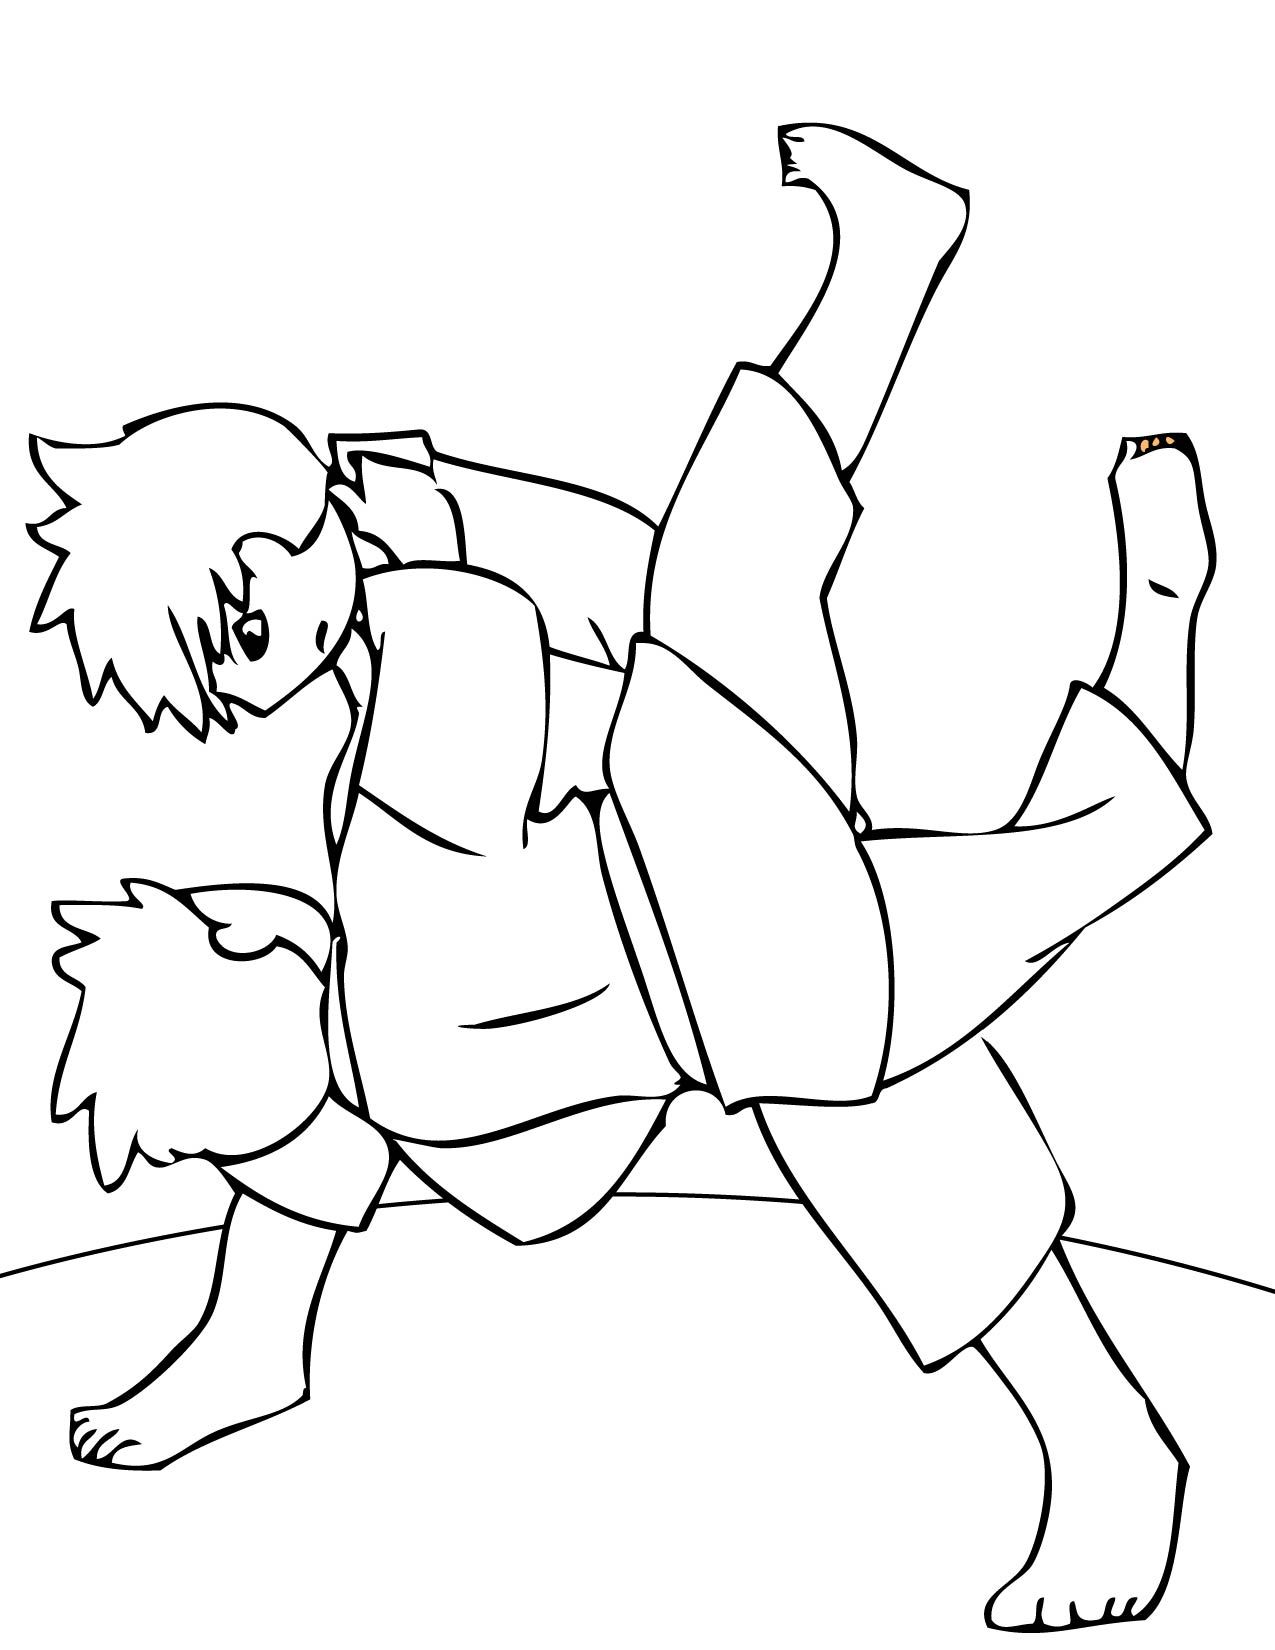 Easy Martial Arts Coloring Pages